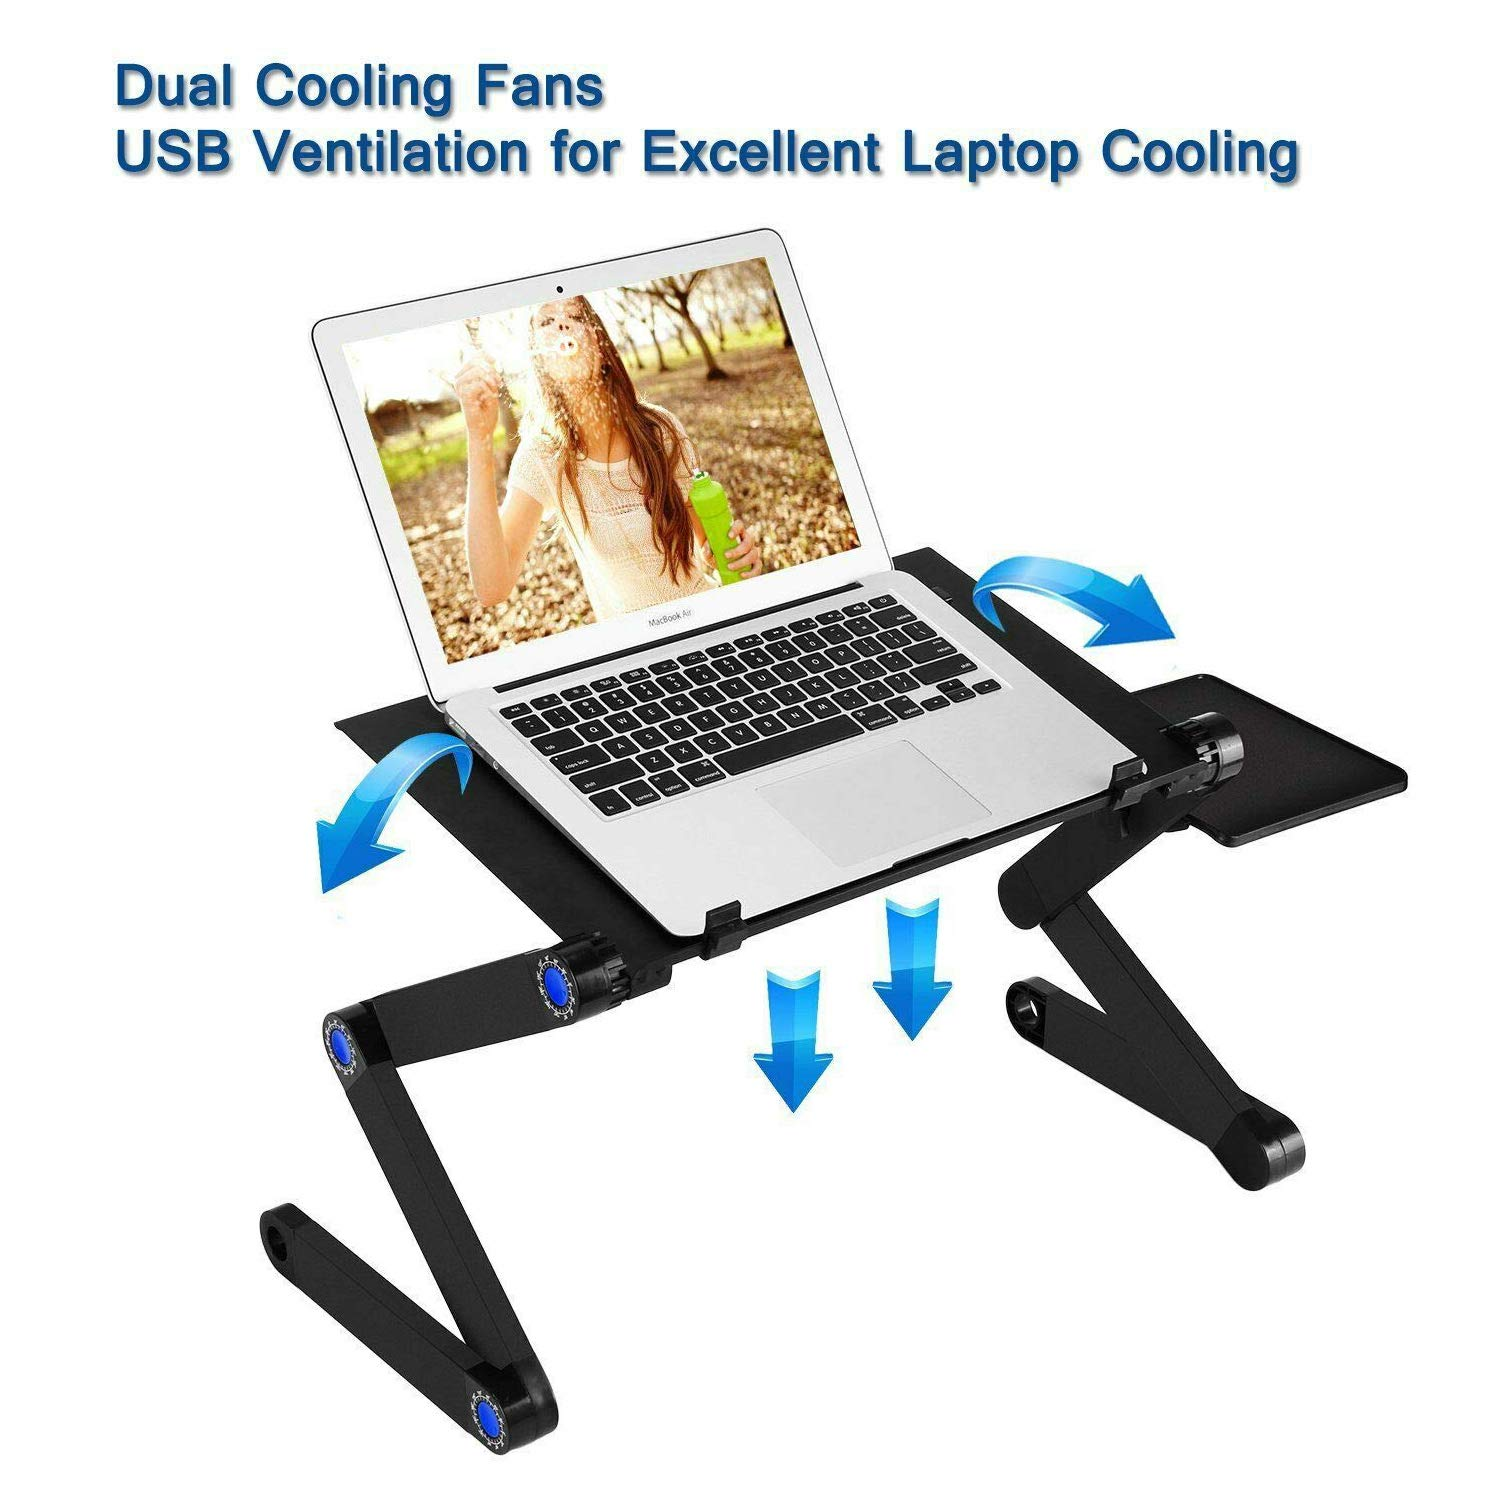 RAINBEAN Laptop Stand with 2 CPU Cooling USB Fans for Bed,Cozy Aluminum Vented Lap Workstation Desk with Mouse Pad,Foldable Book Reading Stand Notebook Tablet Holder on Sofa,Adjustable Bed Table Tray by RAINBEAN